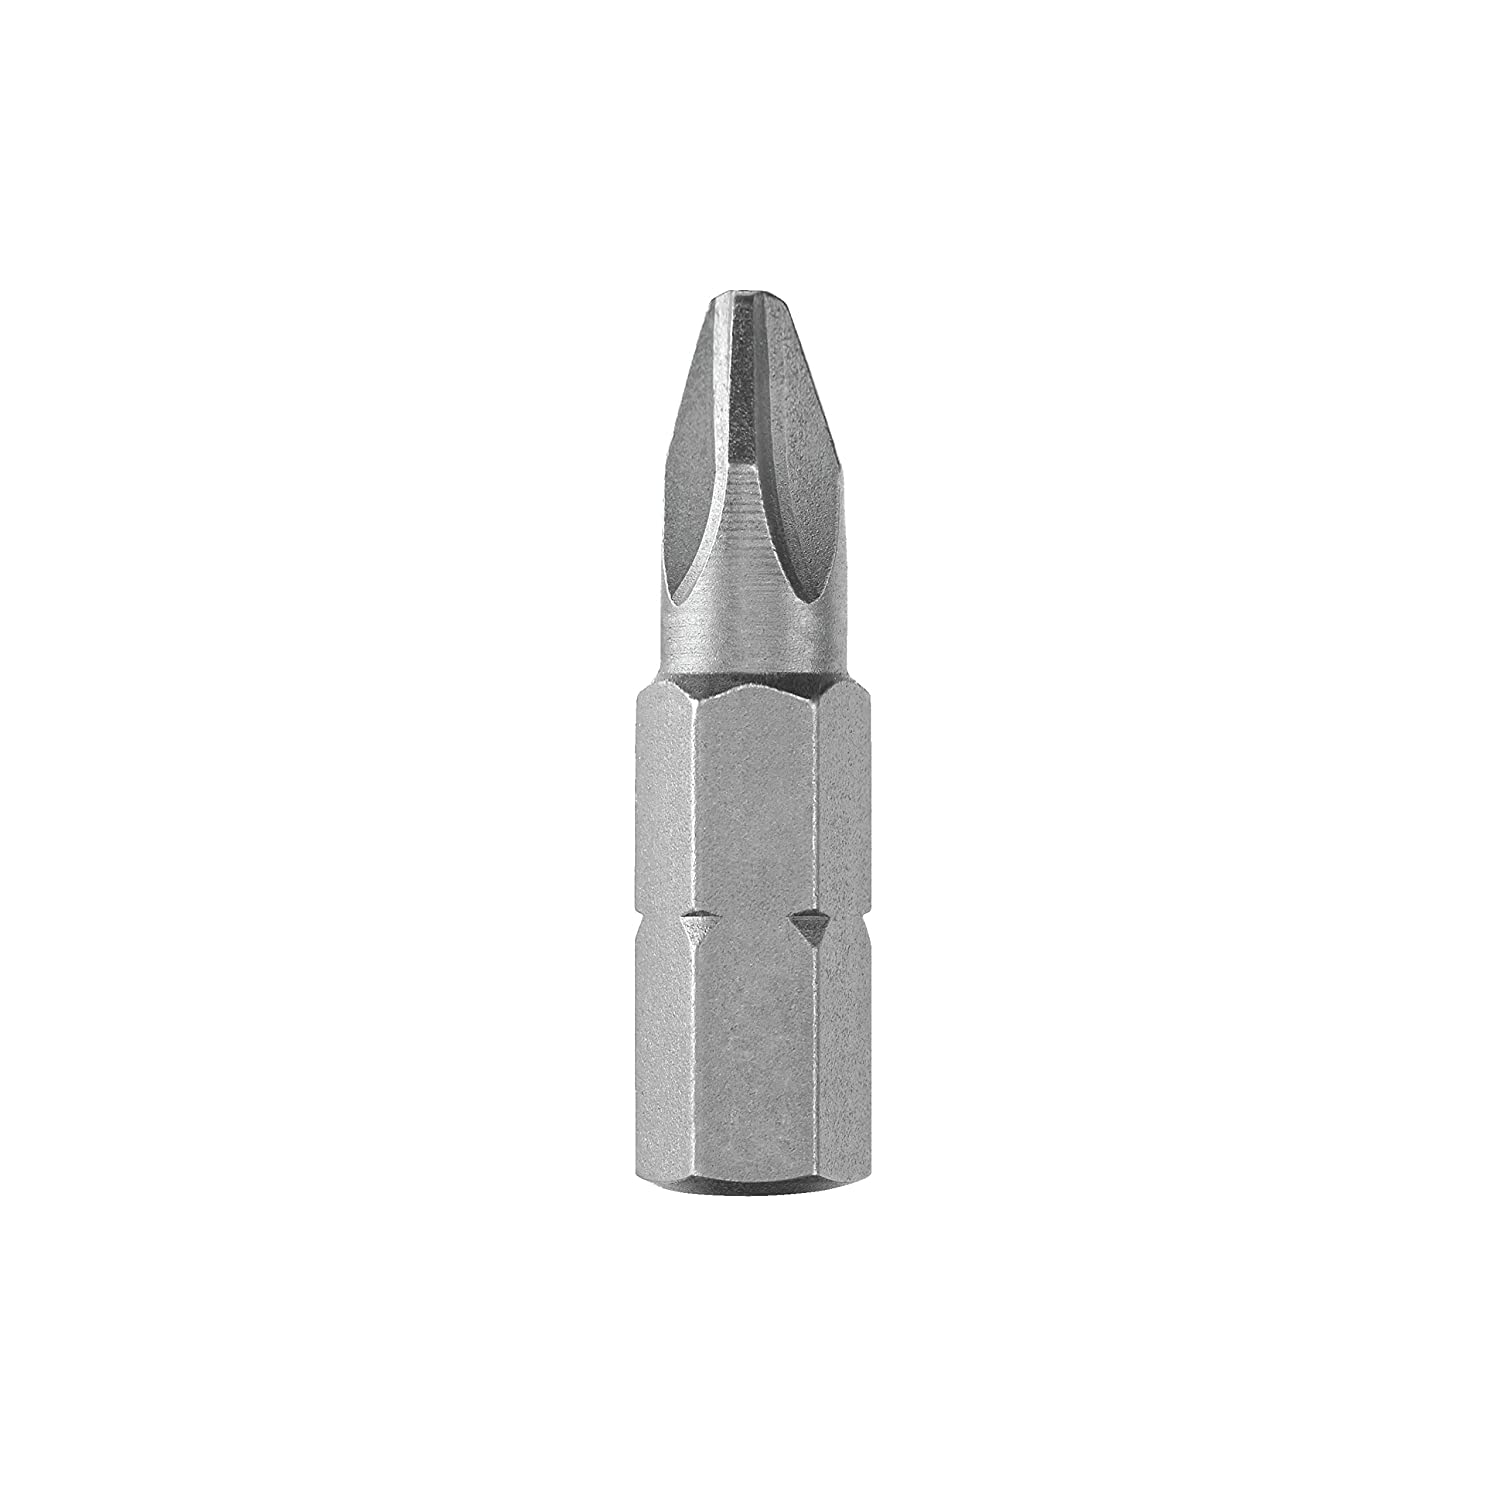 DEWALT Dw2002BL Number-2 Phillips Insert Bit Tip, 100-Pack